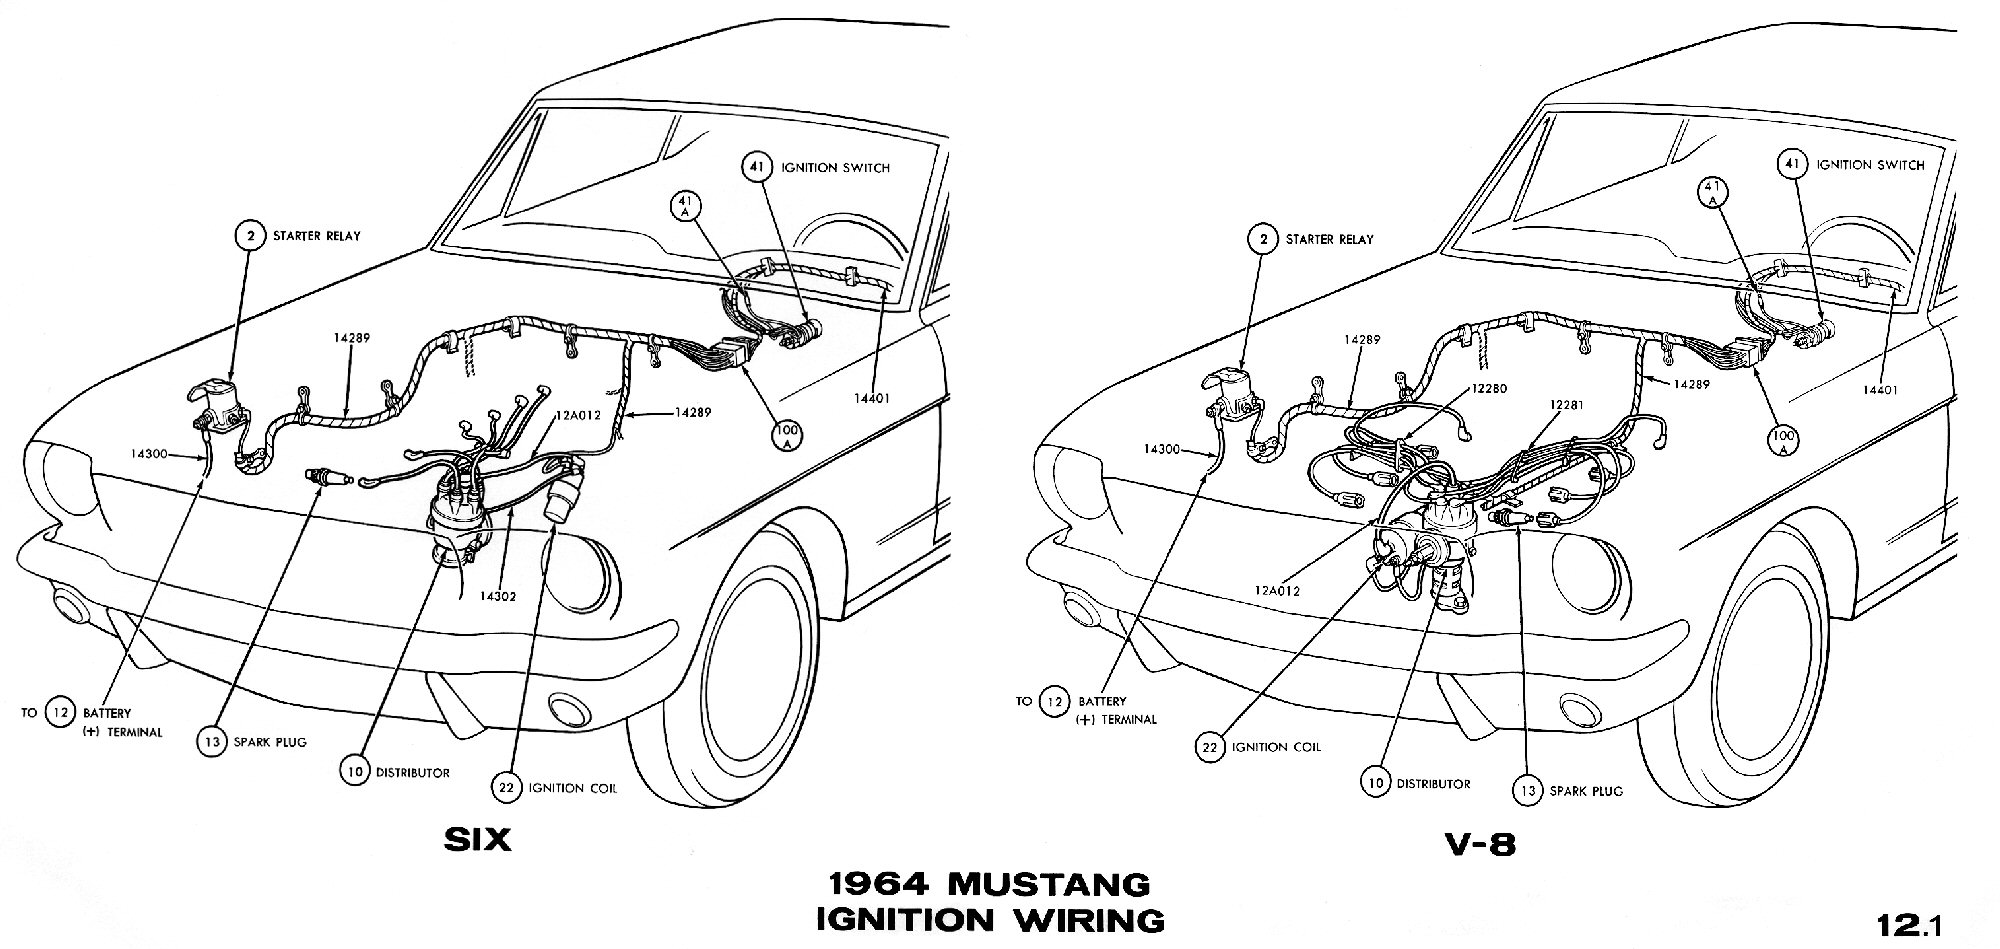 1964 Mustang Wiring Diagrams Average Joe Restoration 1968 Transmission Selector Diagram Sm1964c Ignition Pictorial